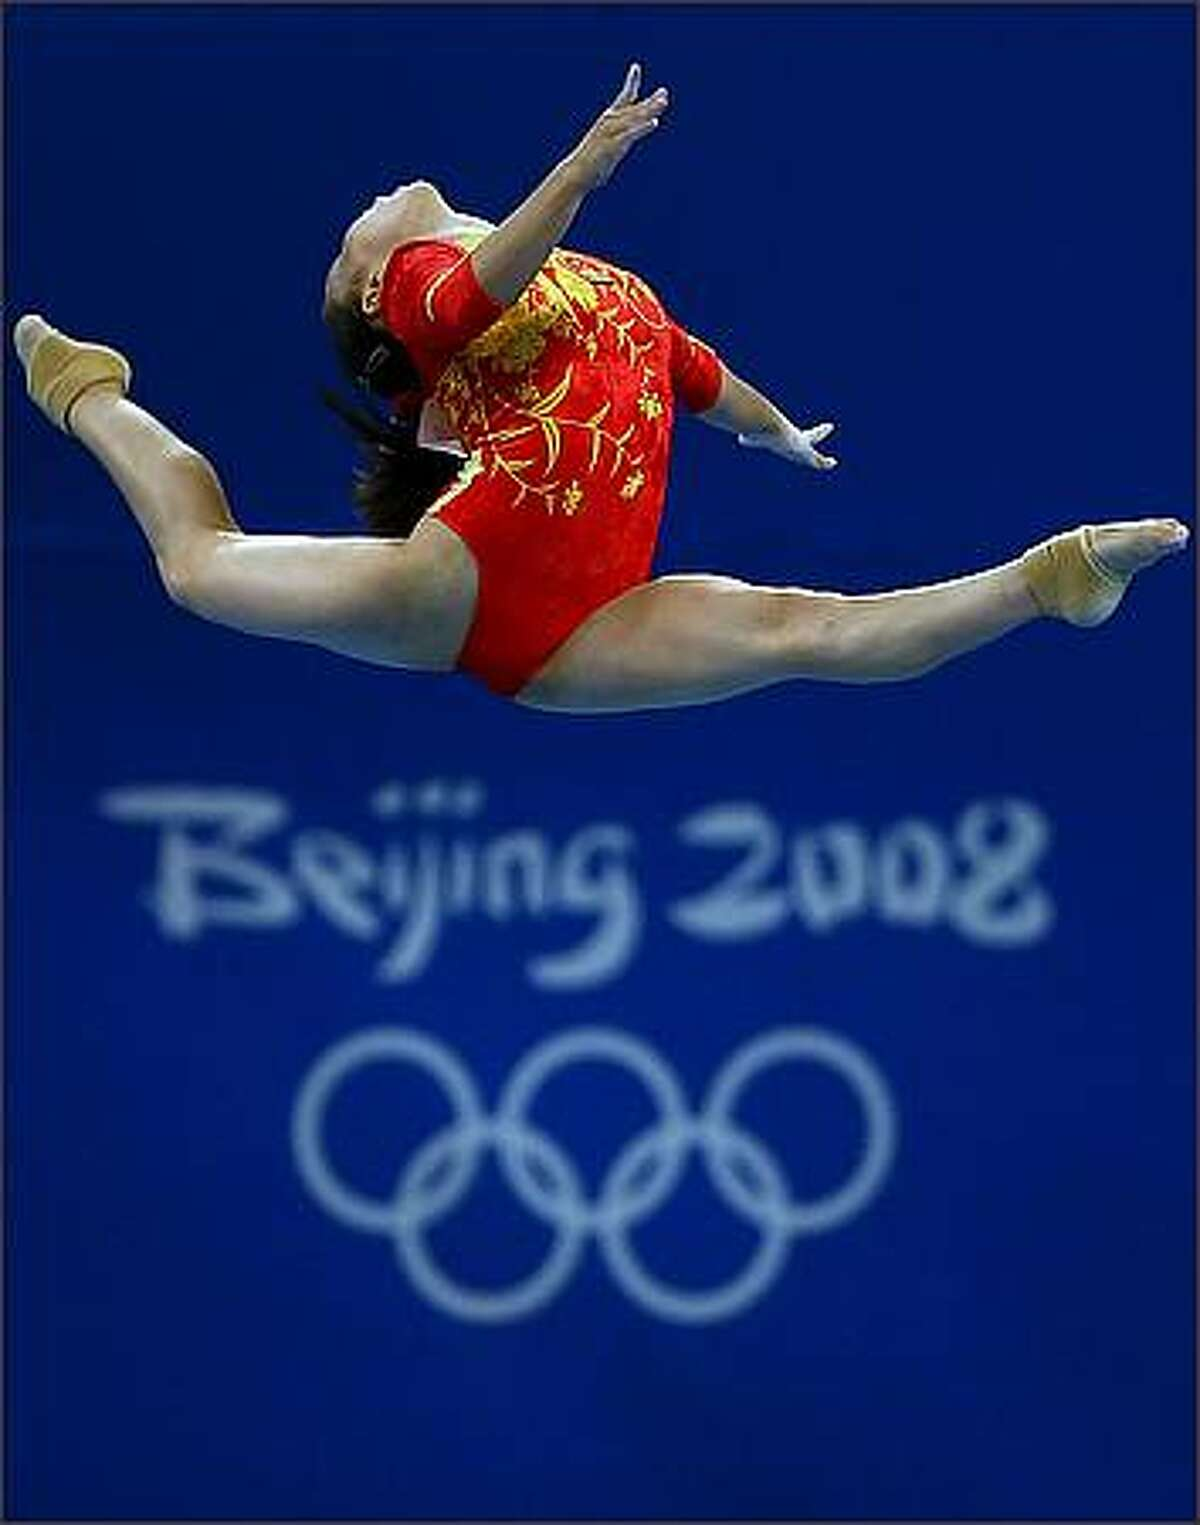 Li Shanshan of China performs on the balance beam during the women's team final of the artistic gymnastics event at the National Indoor Stadium during Day 5 of the Beijing 2008 Olympic Games in Beijing, China. (Photo by Shaun Botterill/Getty Images)